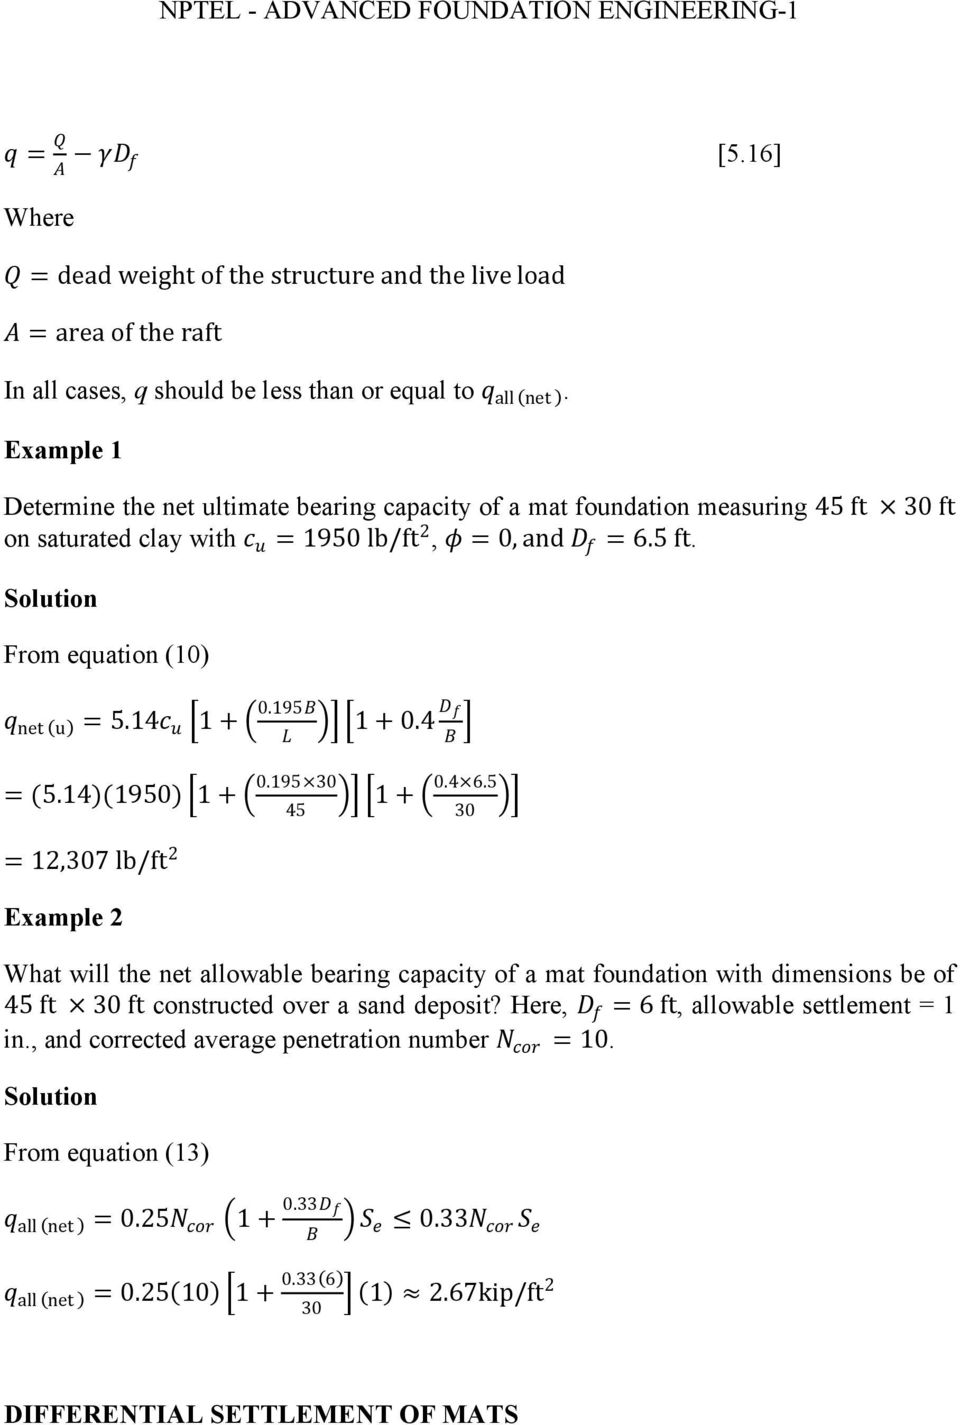 Module 5 (Lectures 17 to 19) MAT FOUNDATIONS - PDF